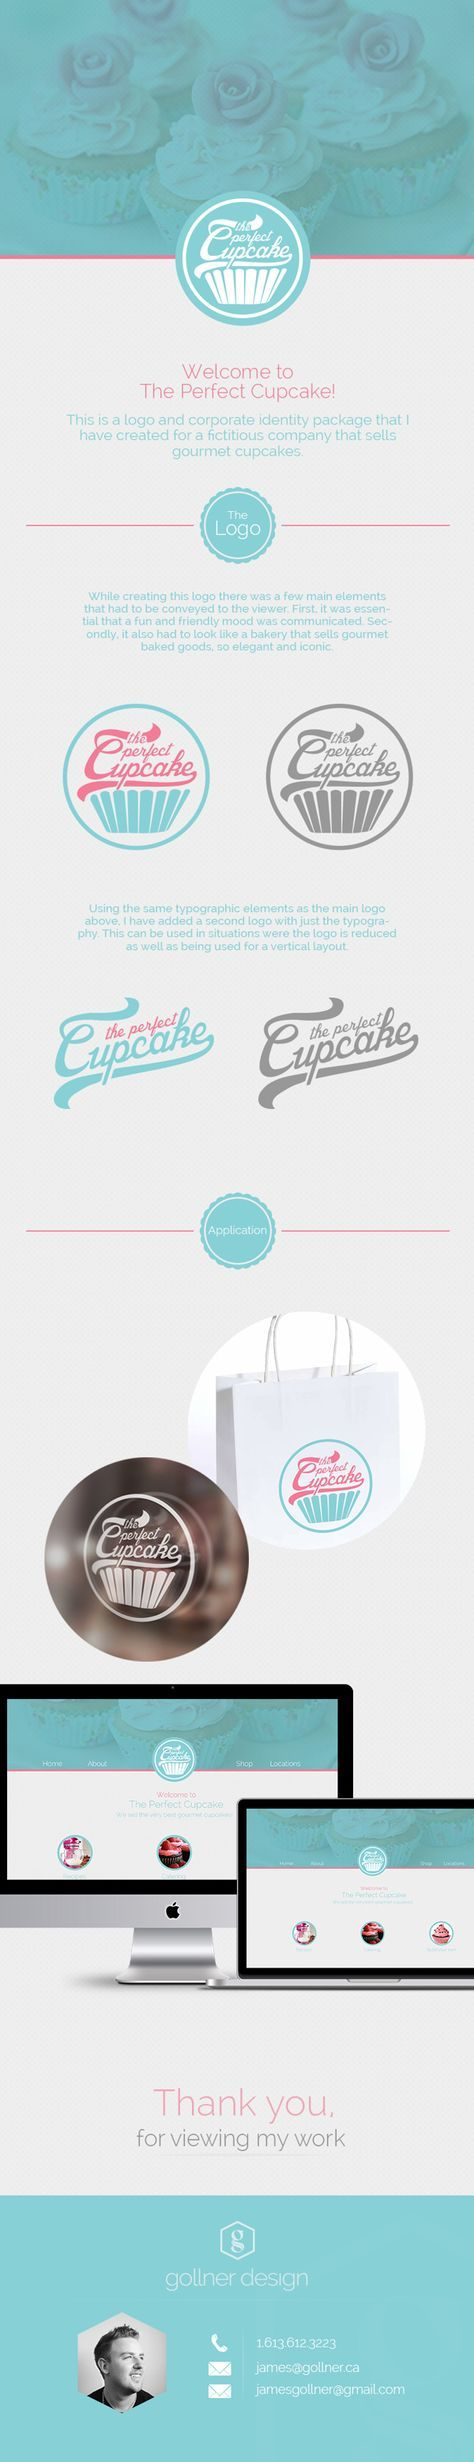 The Perfect Cupcake | Logo & Corporate Identity by James Gollner, via Behance